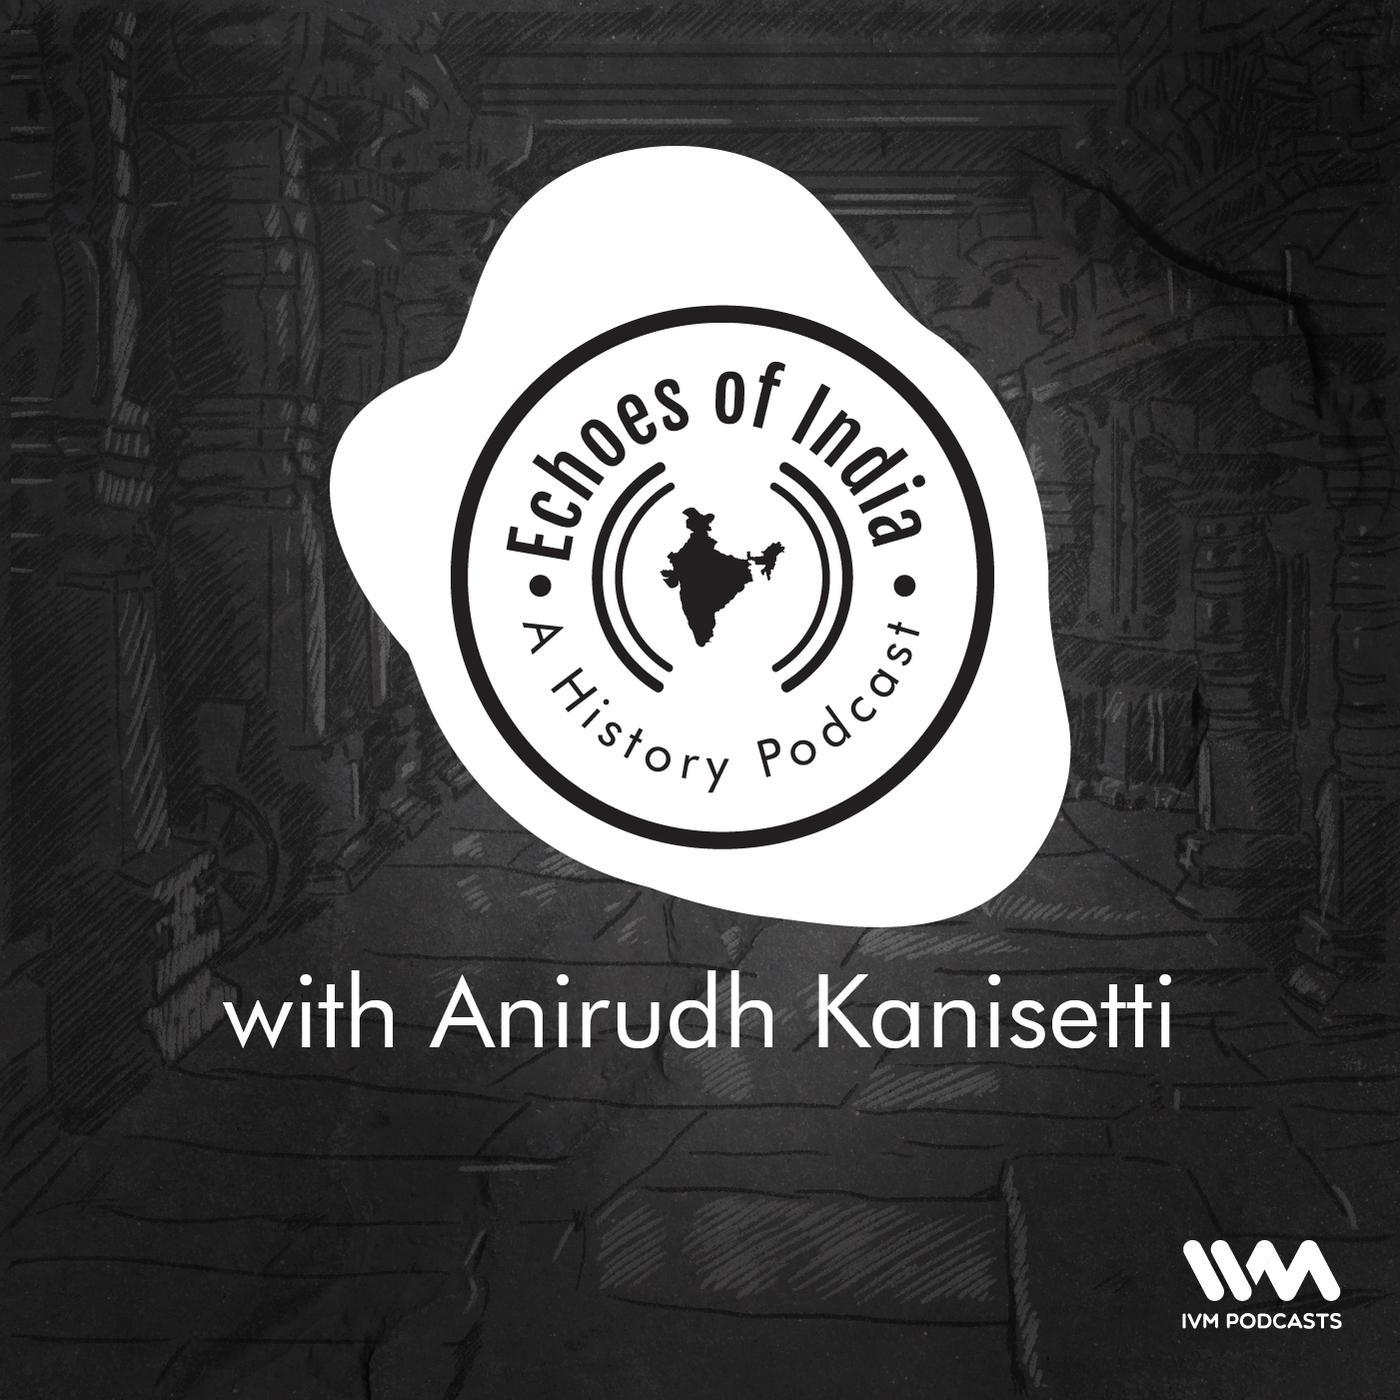 Echoes Of India: A History Podcast |